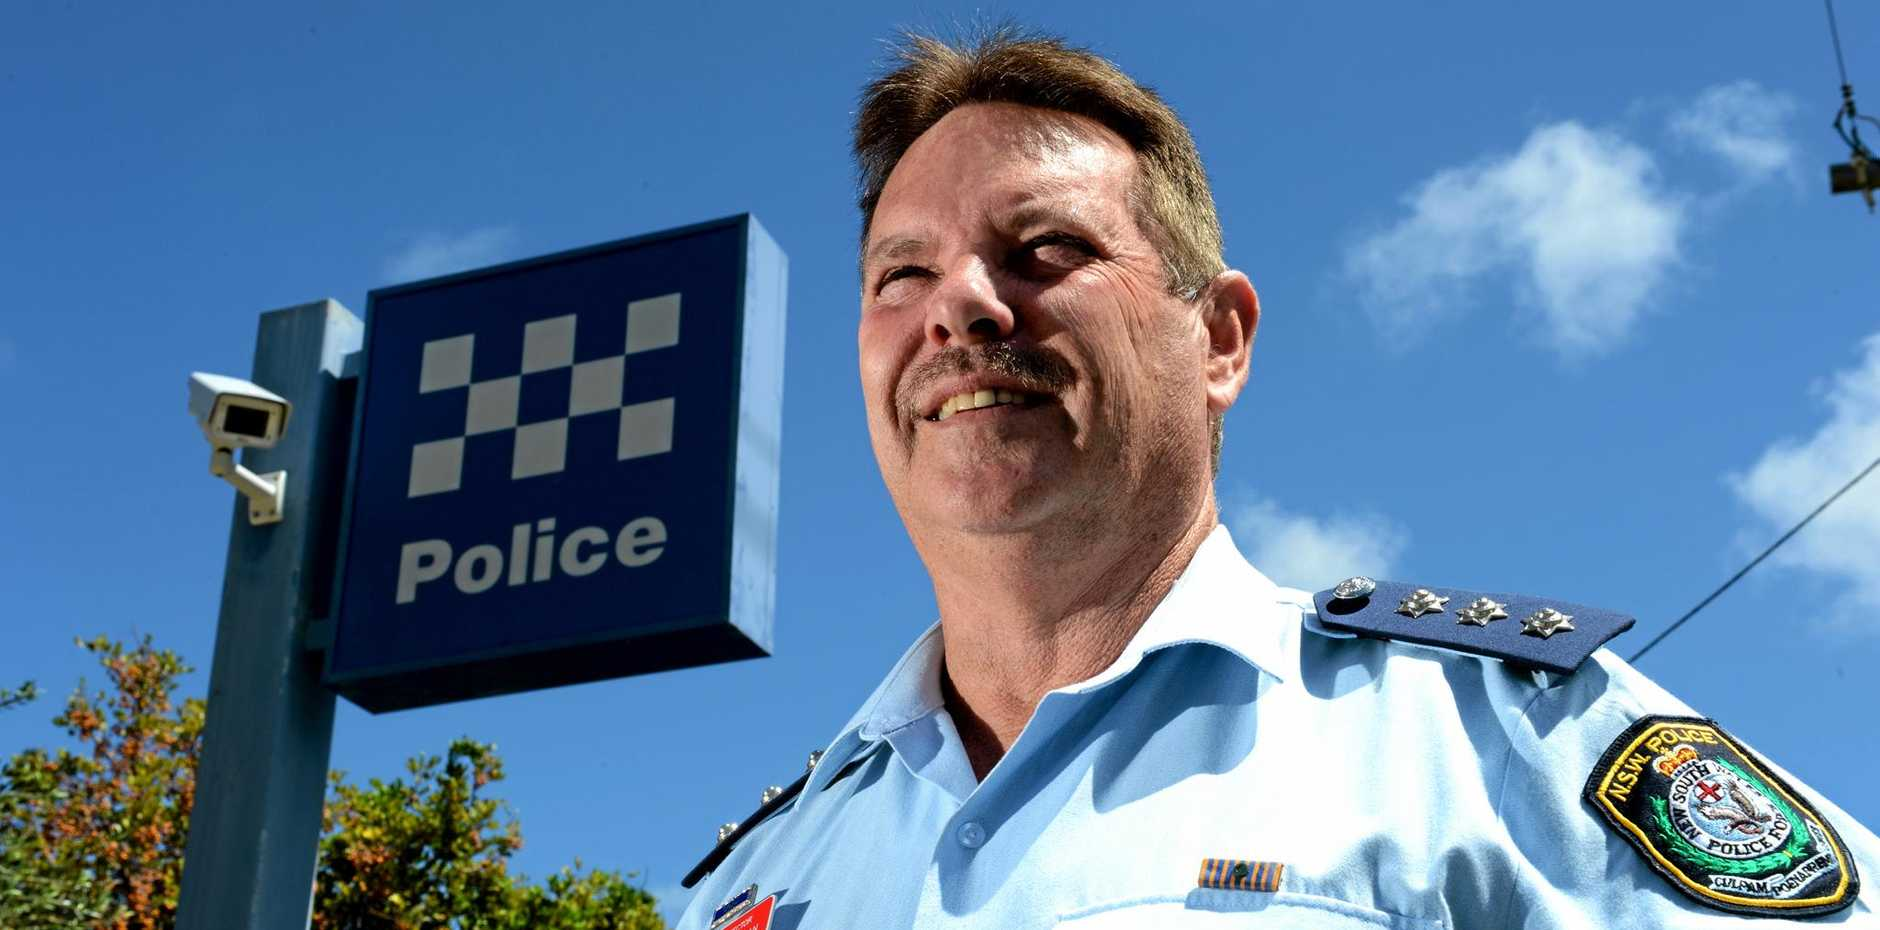 Inspector Gary Cowan says police will be out in full force at this week's Splendour in the Grass festival.